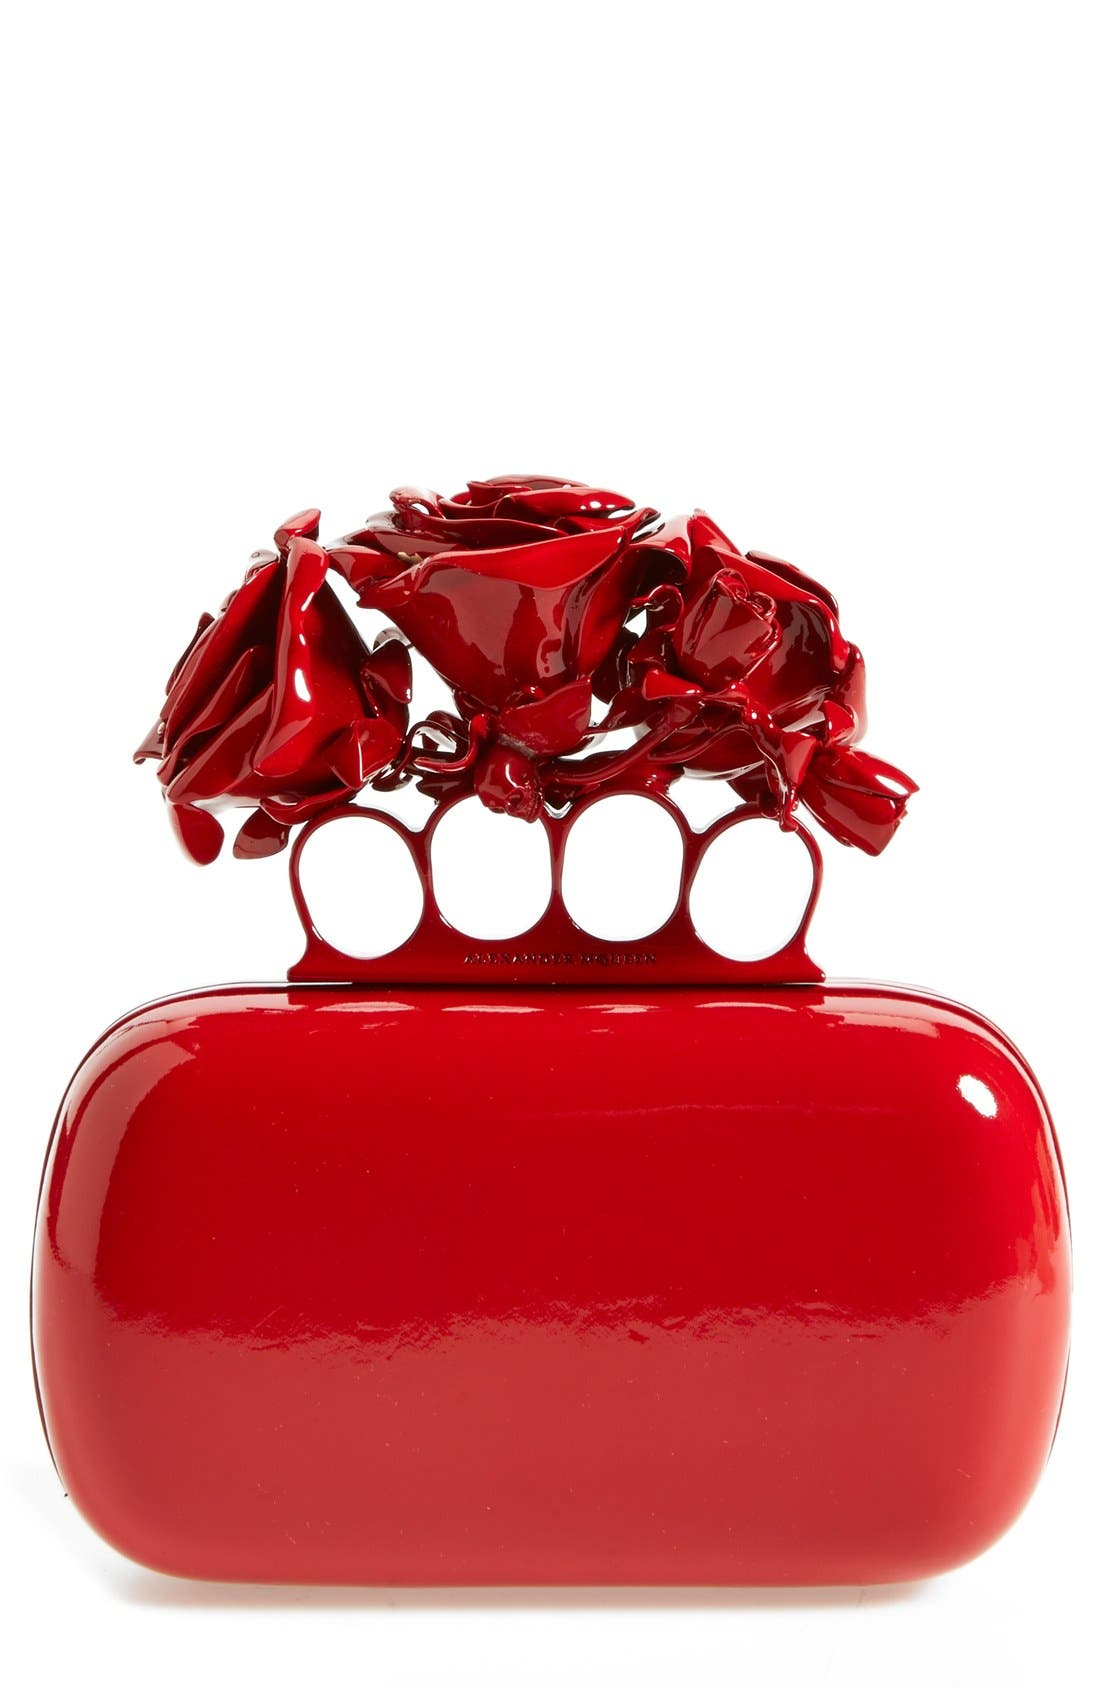 Main Image - Alexander McQueen 'Lacquered Rose' Knuckle Box Clutch